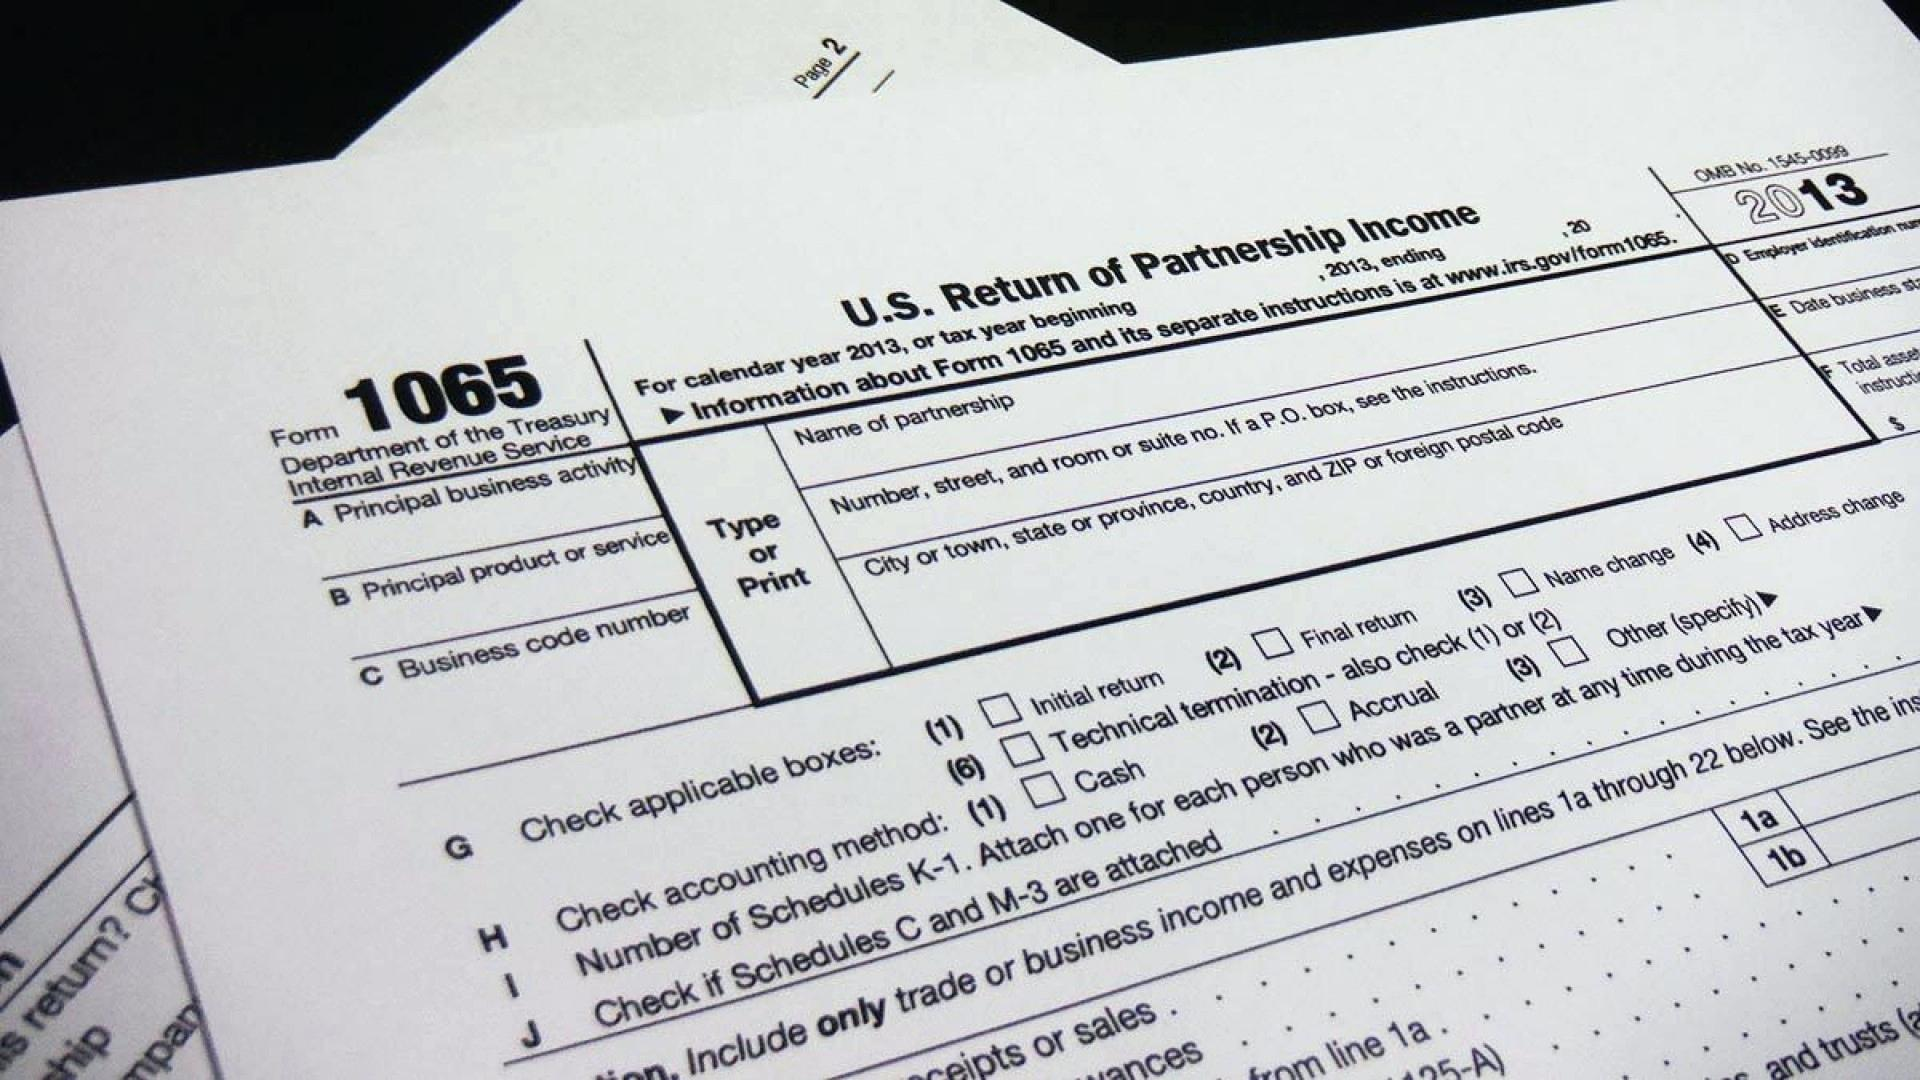 Irs Form 1065 Extension